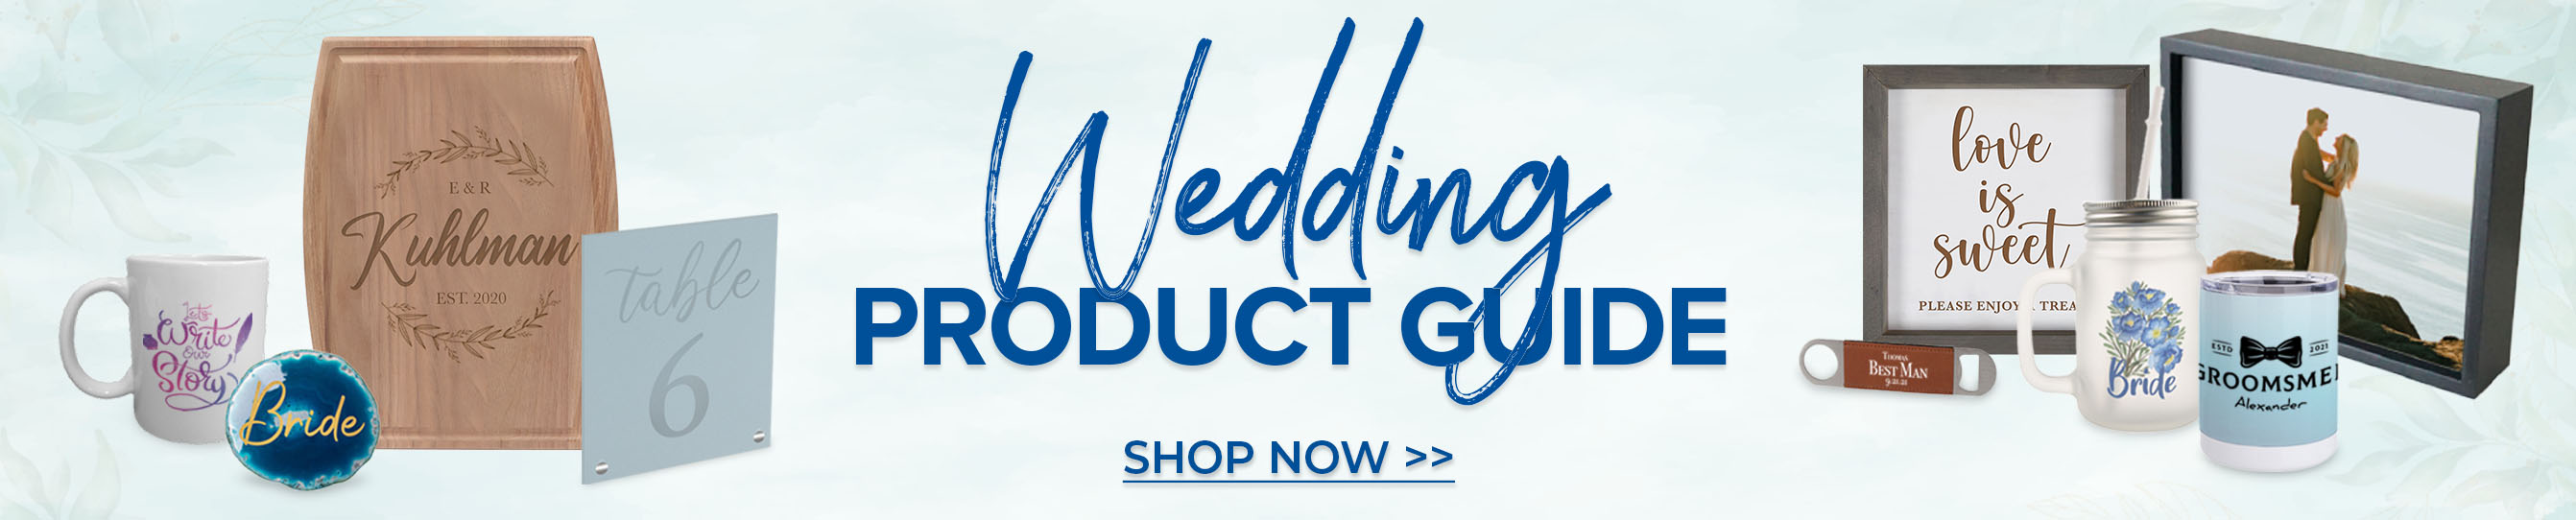 Wedding Product Guide Shop Now